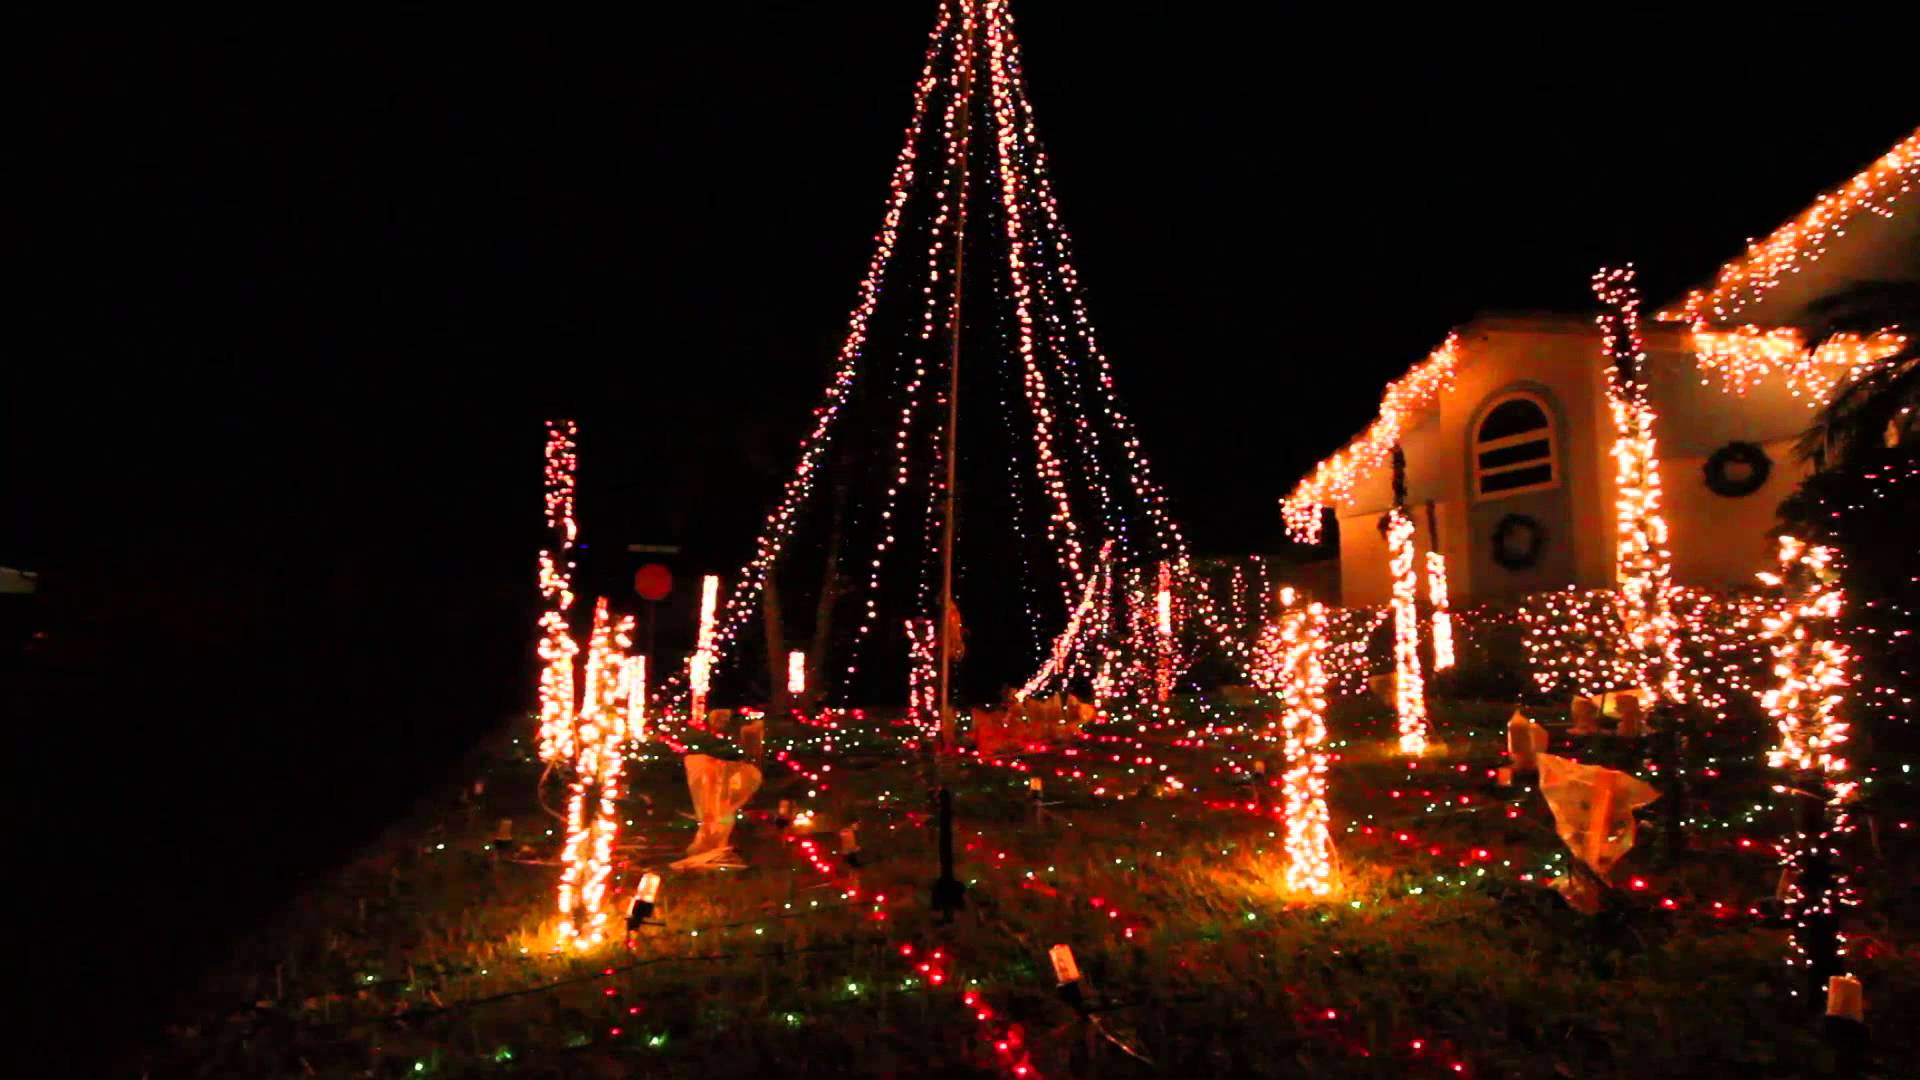 The Most Synchronized Christmas Light Show